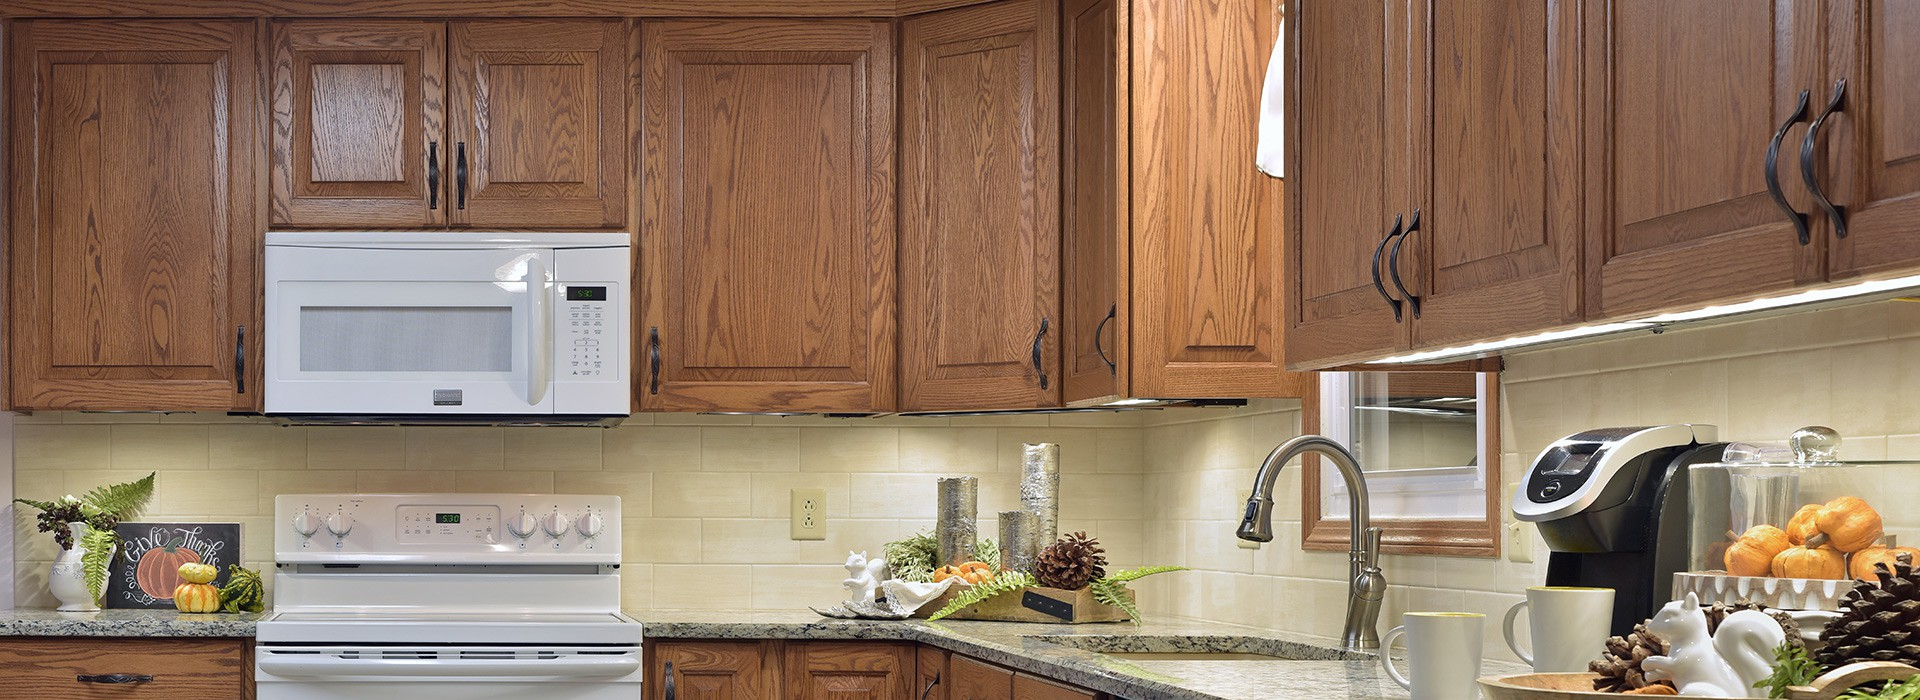 traditional_kitchen_with_backsplash